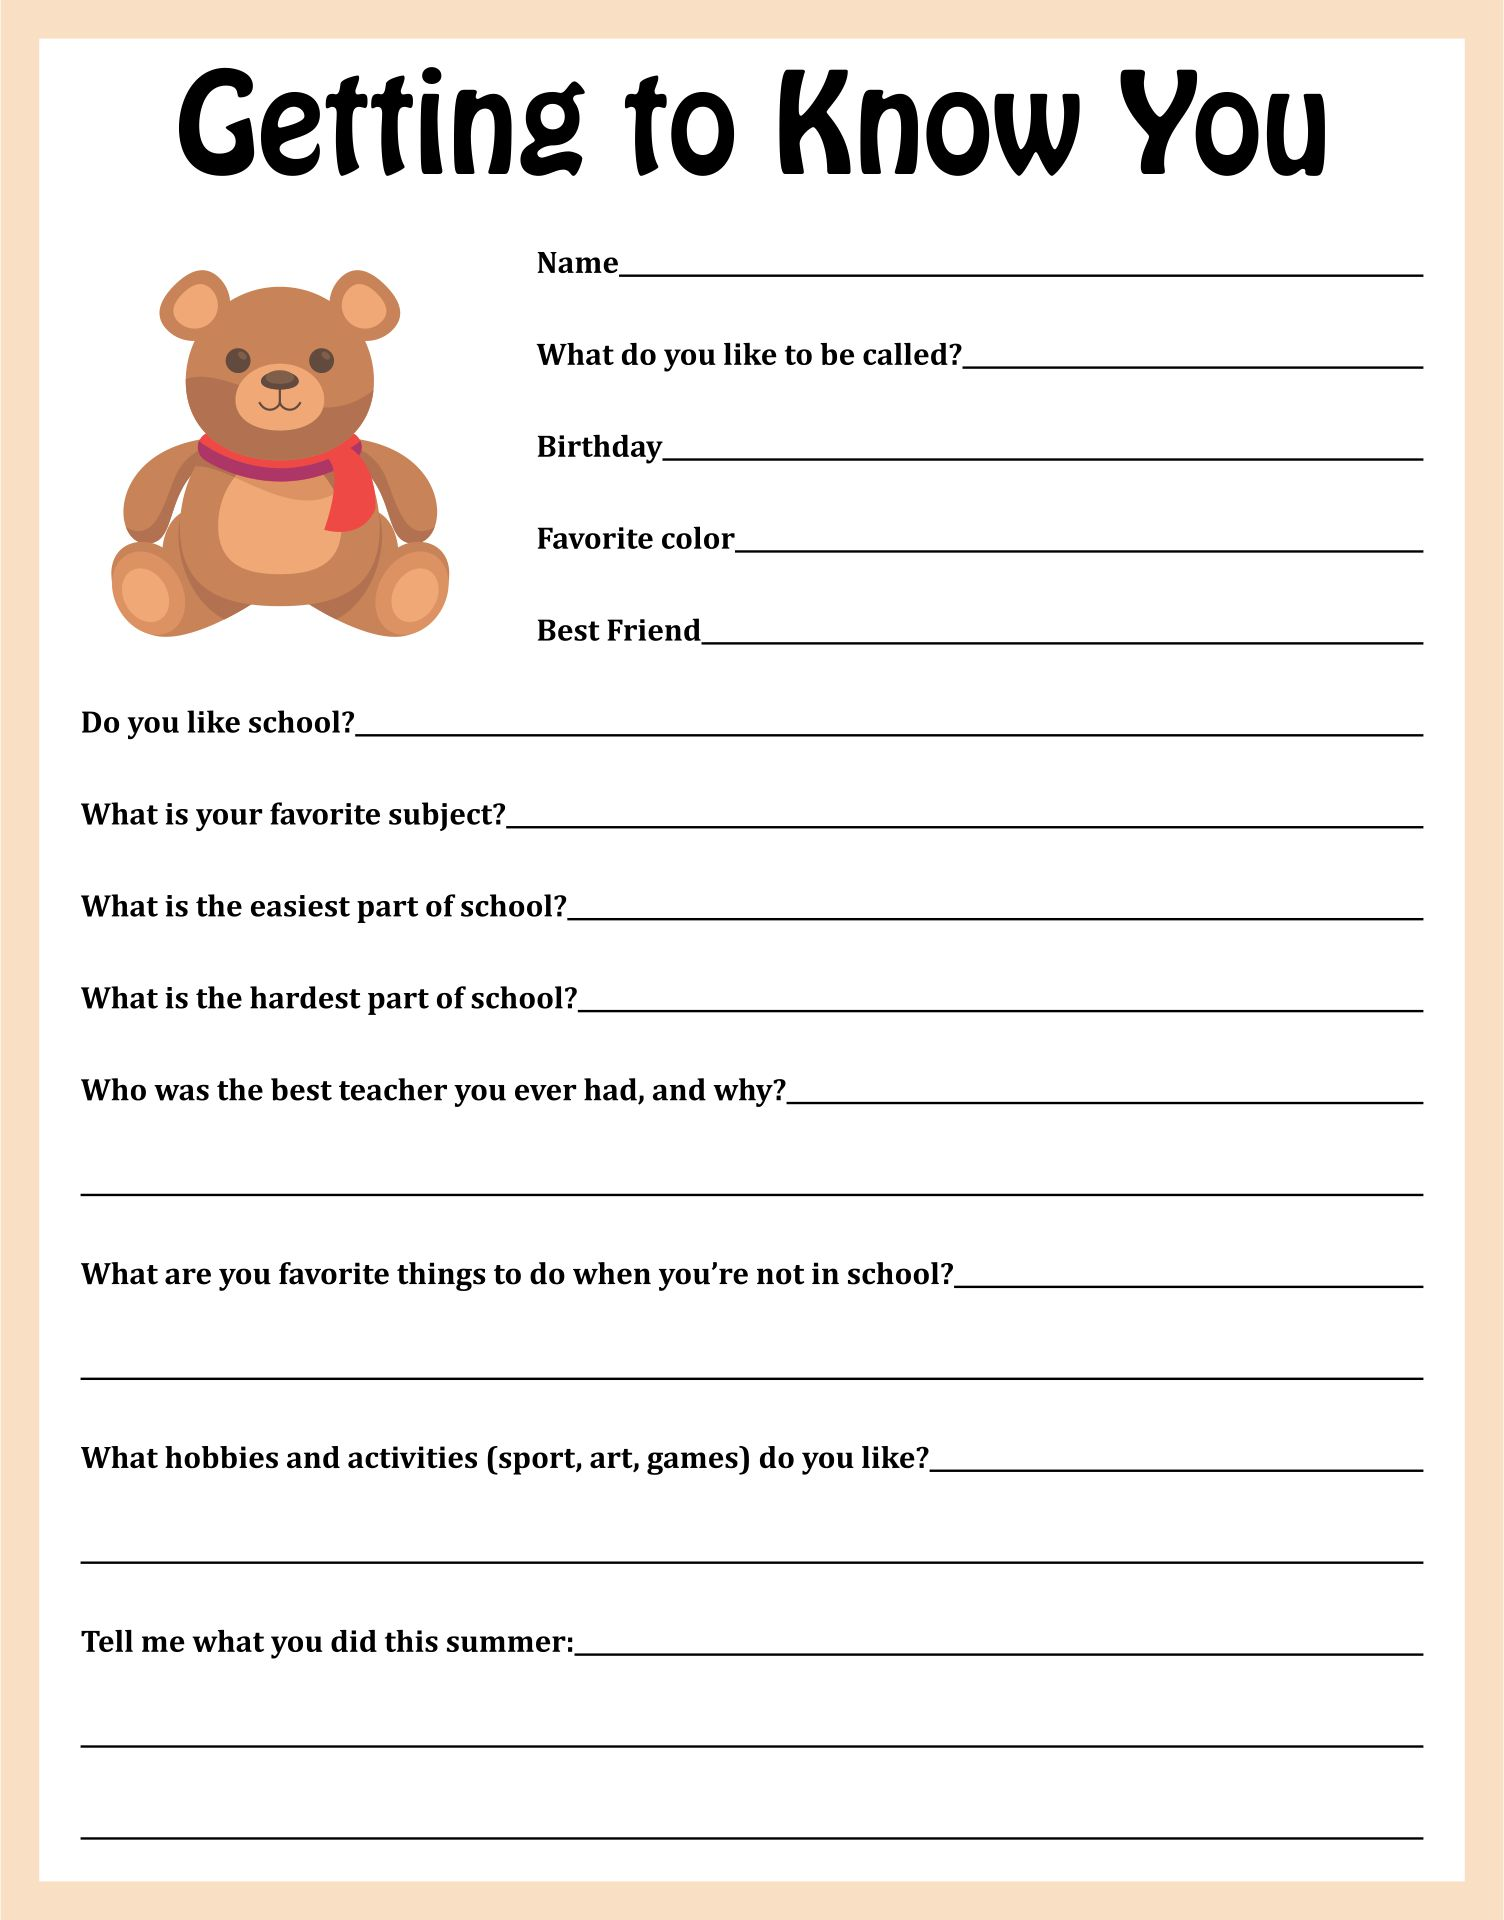 Getting to Know You Student Survey